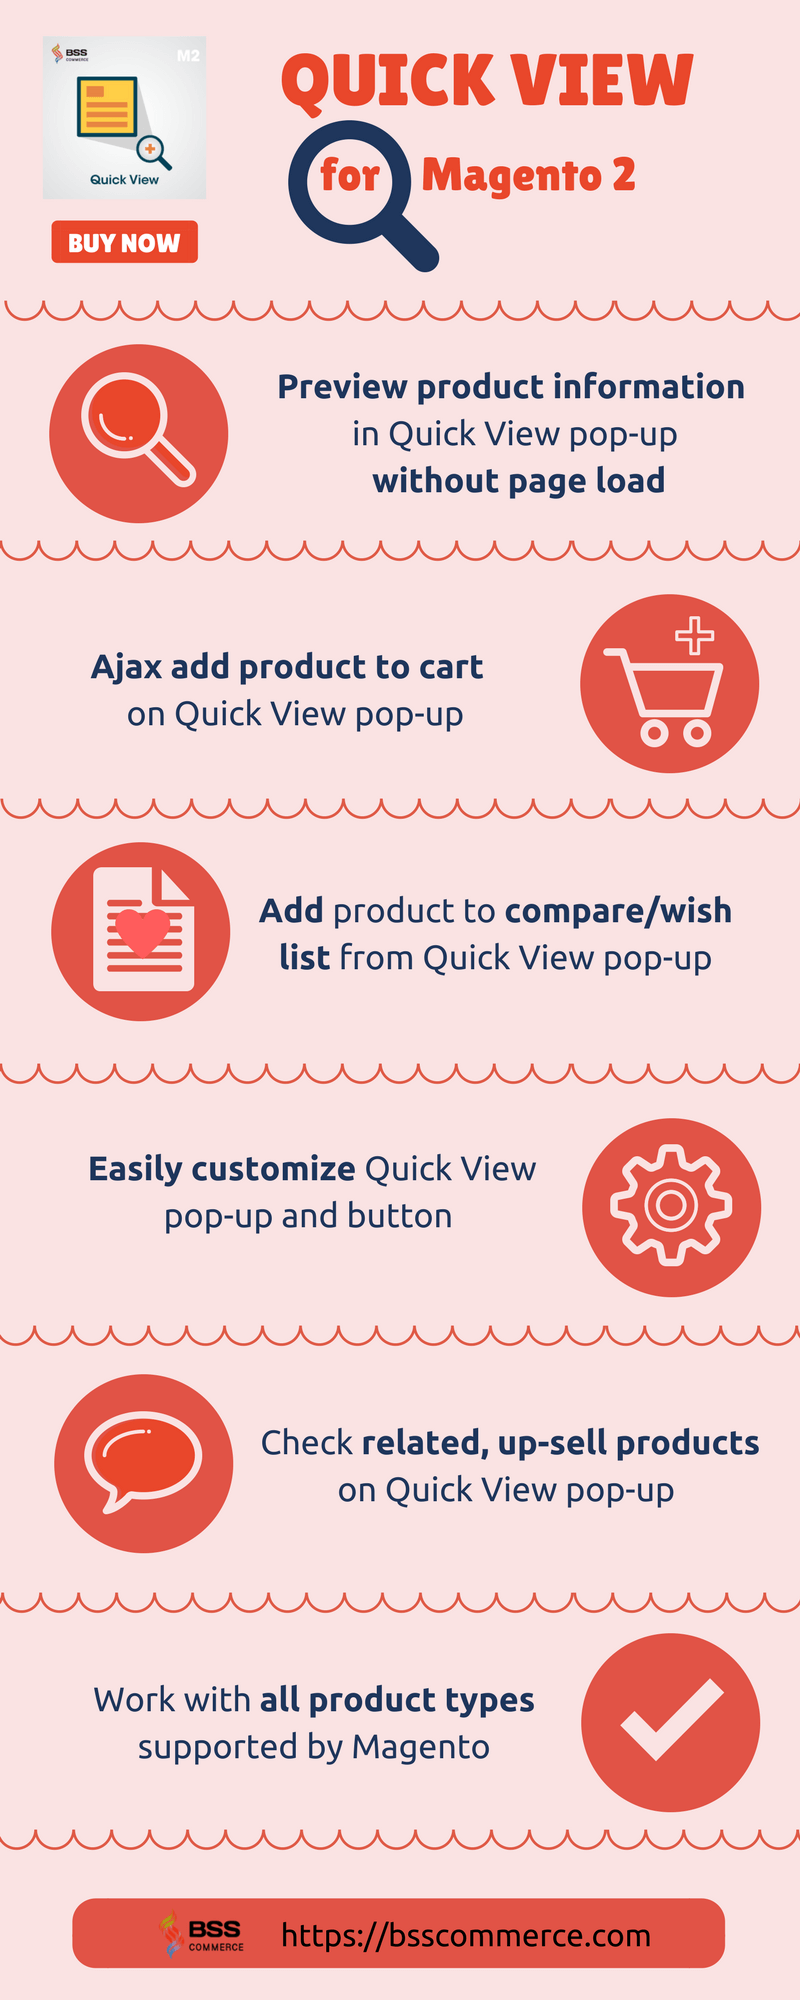 Overview of Magento 2 Quick View extension